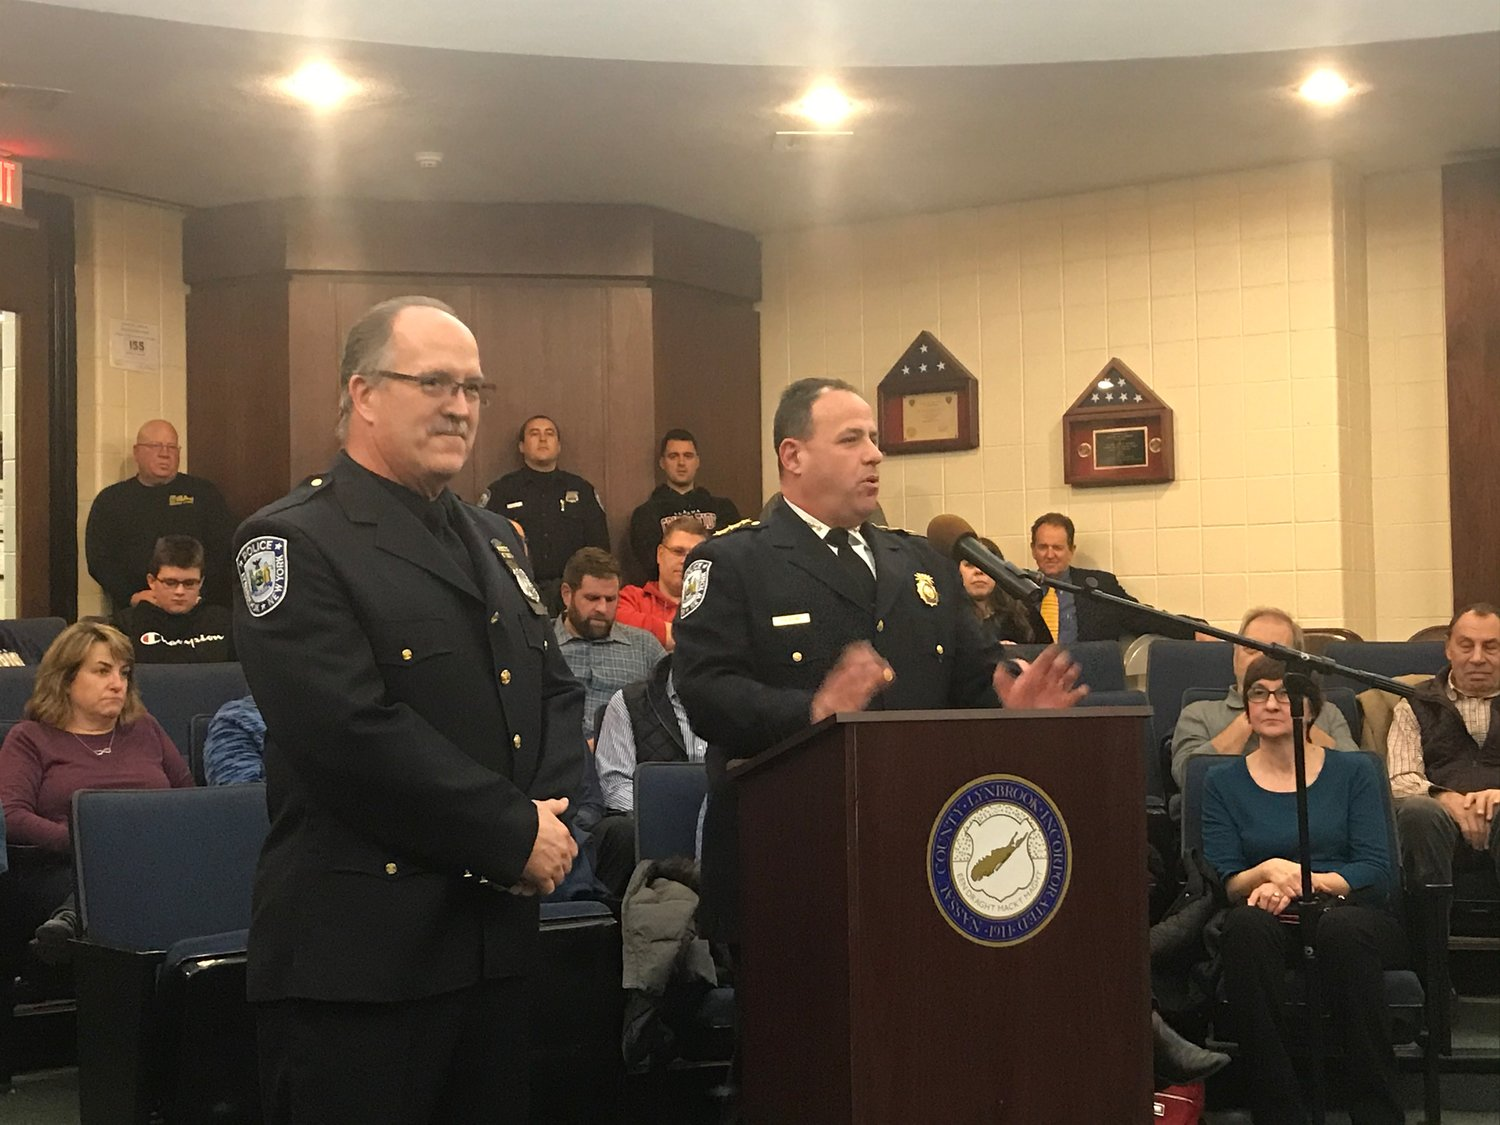 Police Chief Brian Paladino, right, expressed his gratitude to Hahl for his dedication.